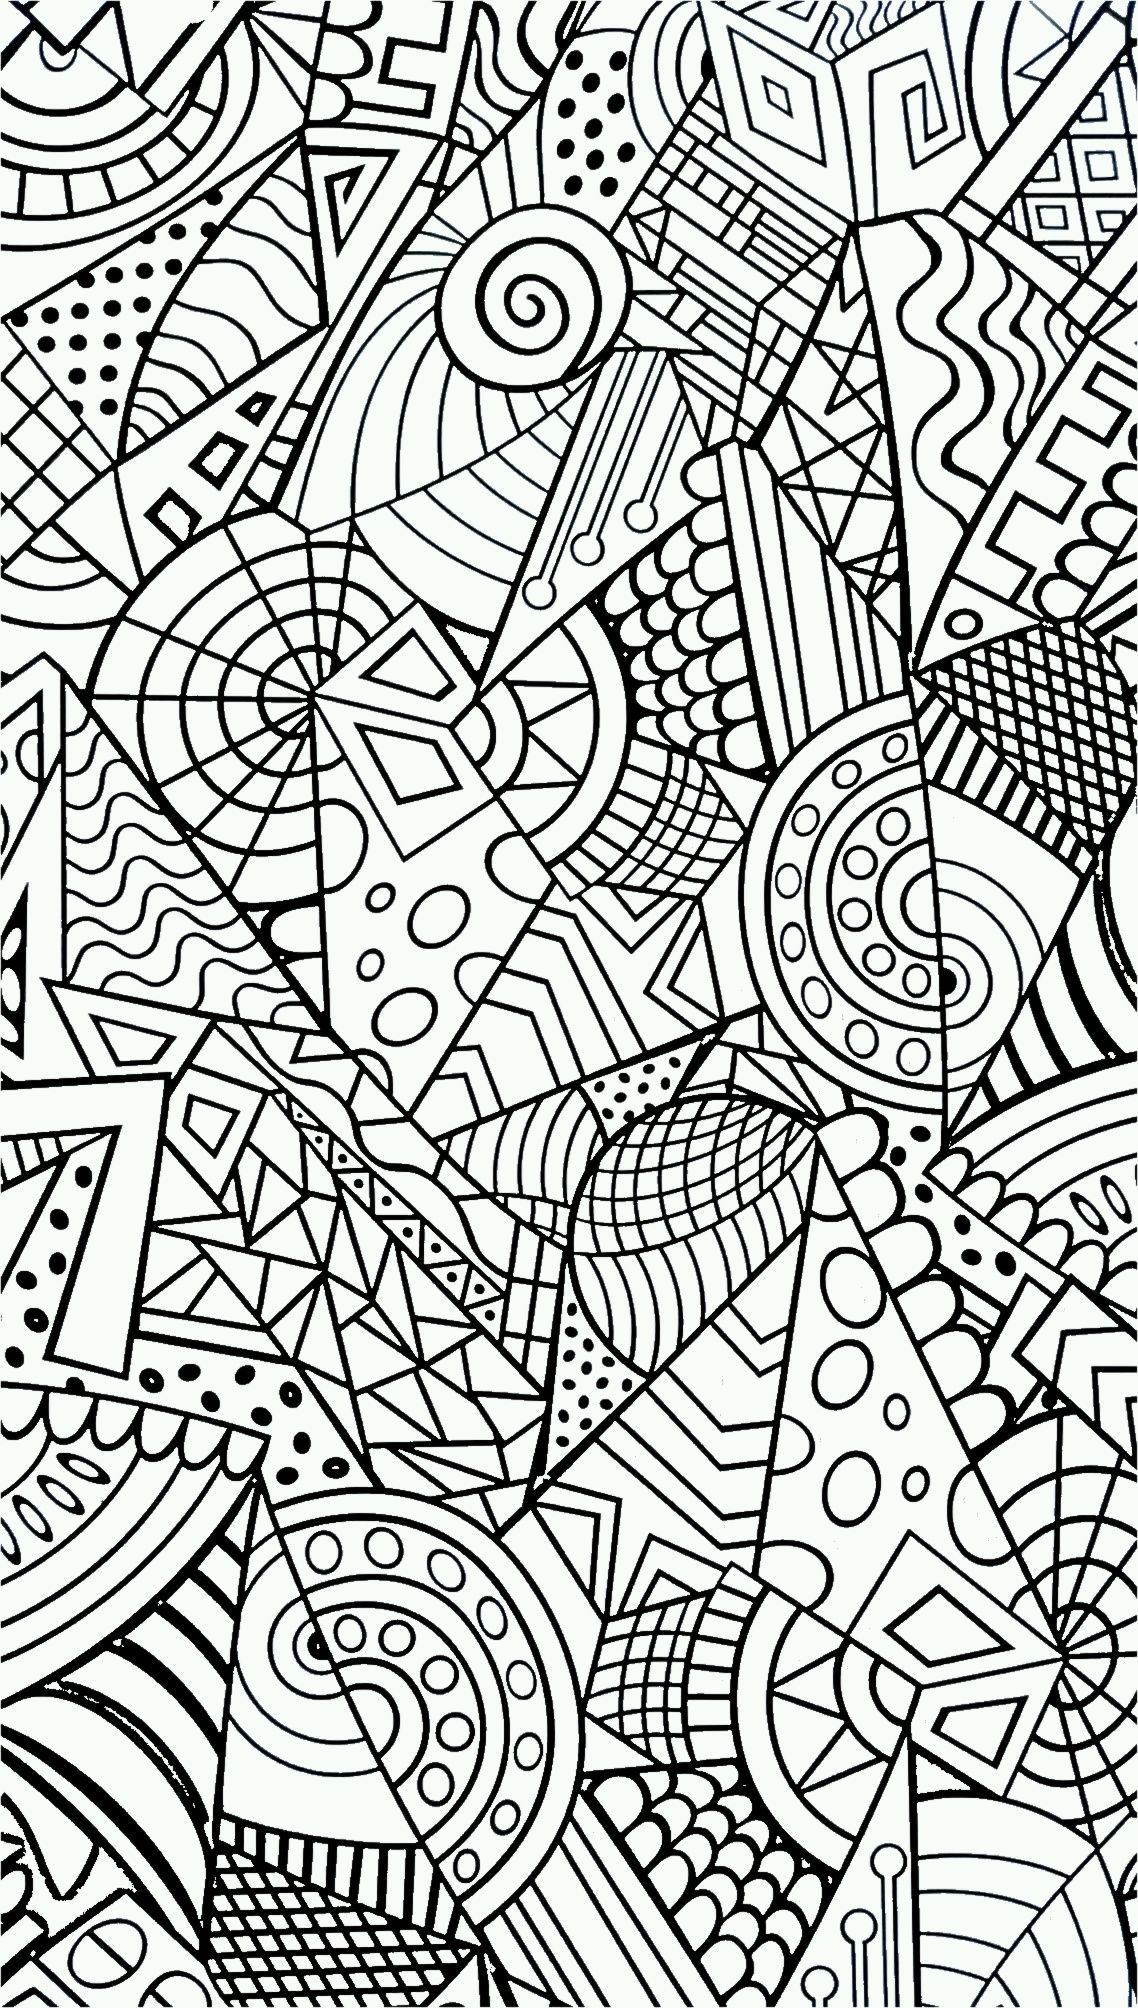 Pin by gro aker on zentangles u doodles pinterest doodles adult